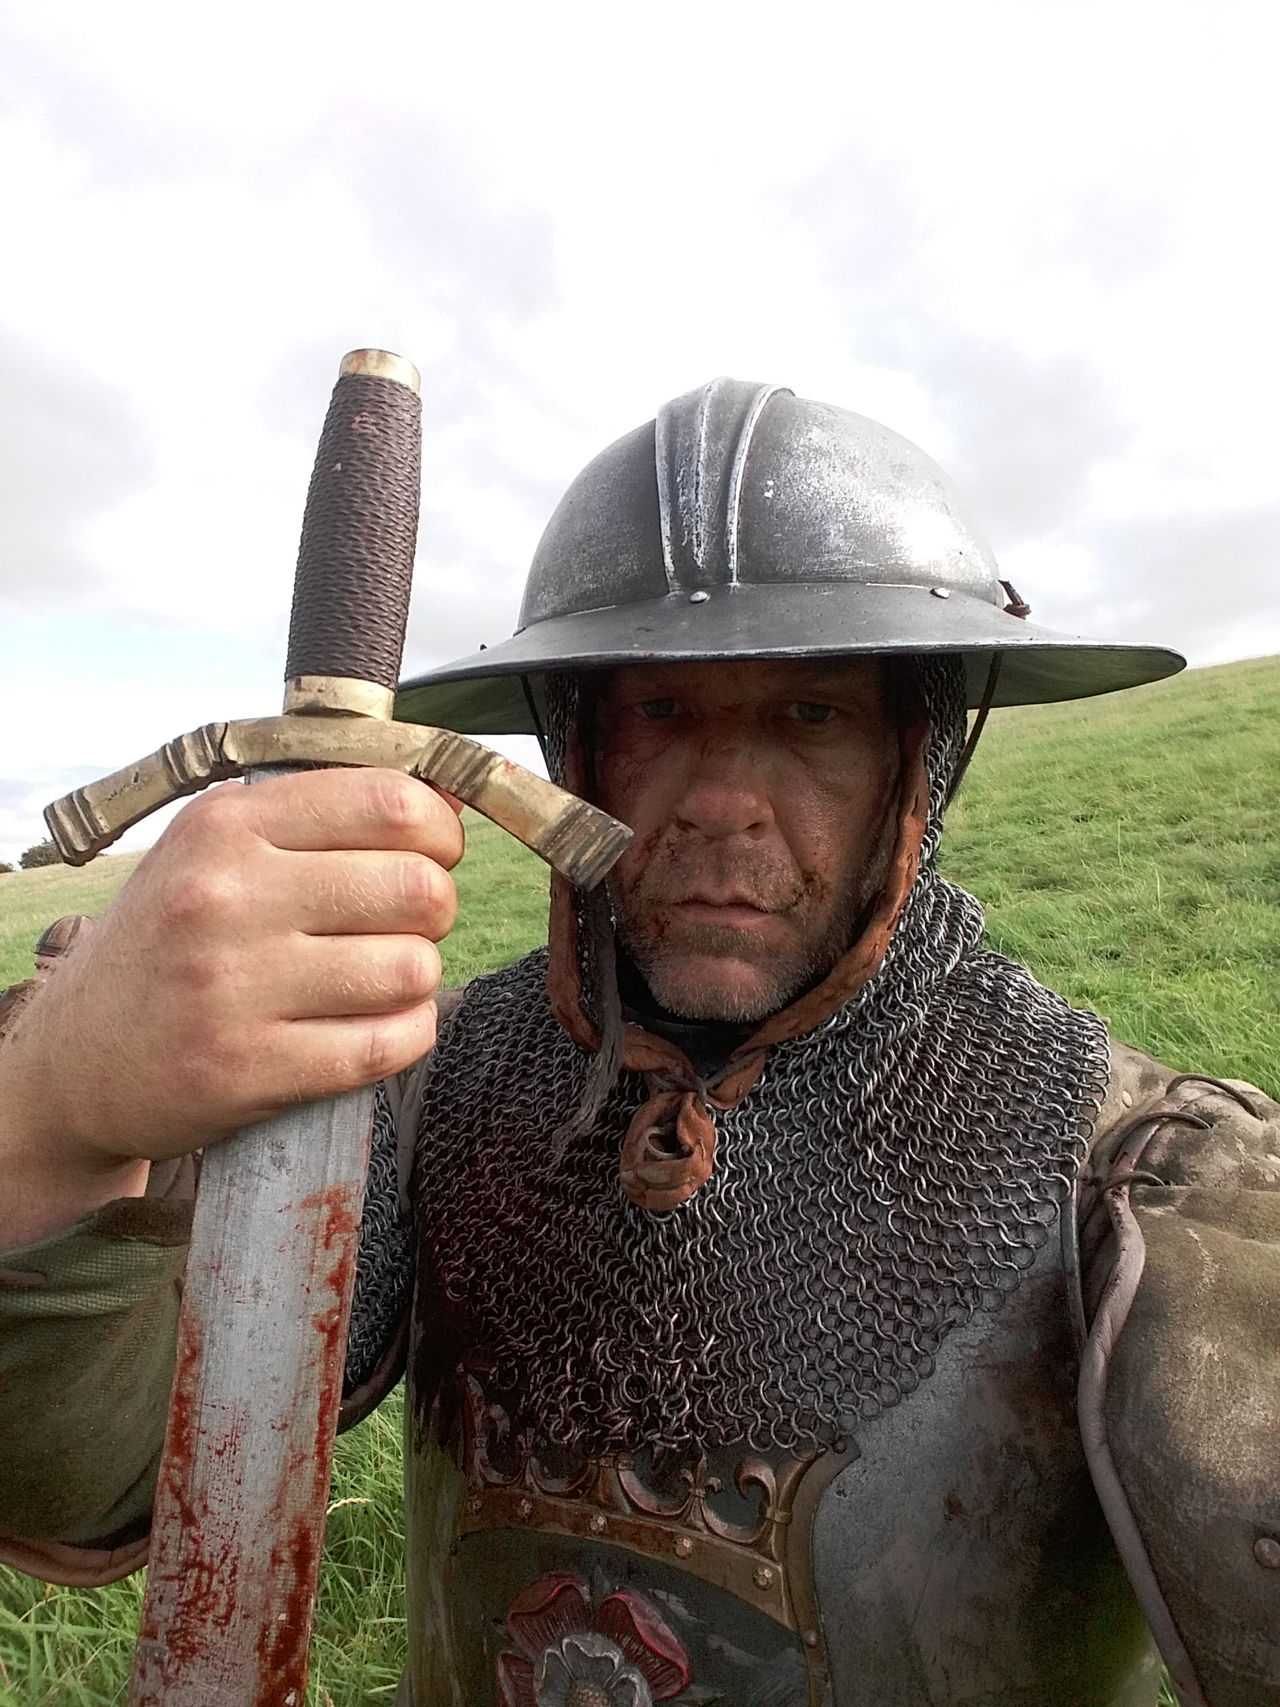 BLOODY Soldier Warrior Battle Battle Weary Bloodied Close-up Day Field Front View Holding Mediaeval One Person Outdoors Real People Sky